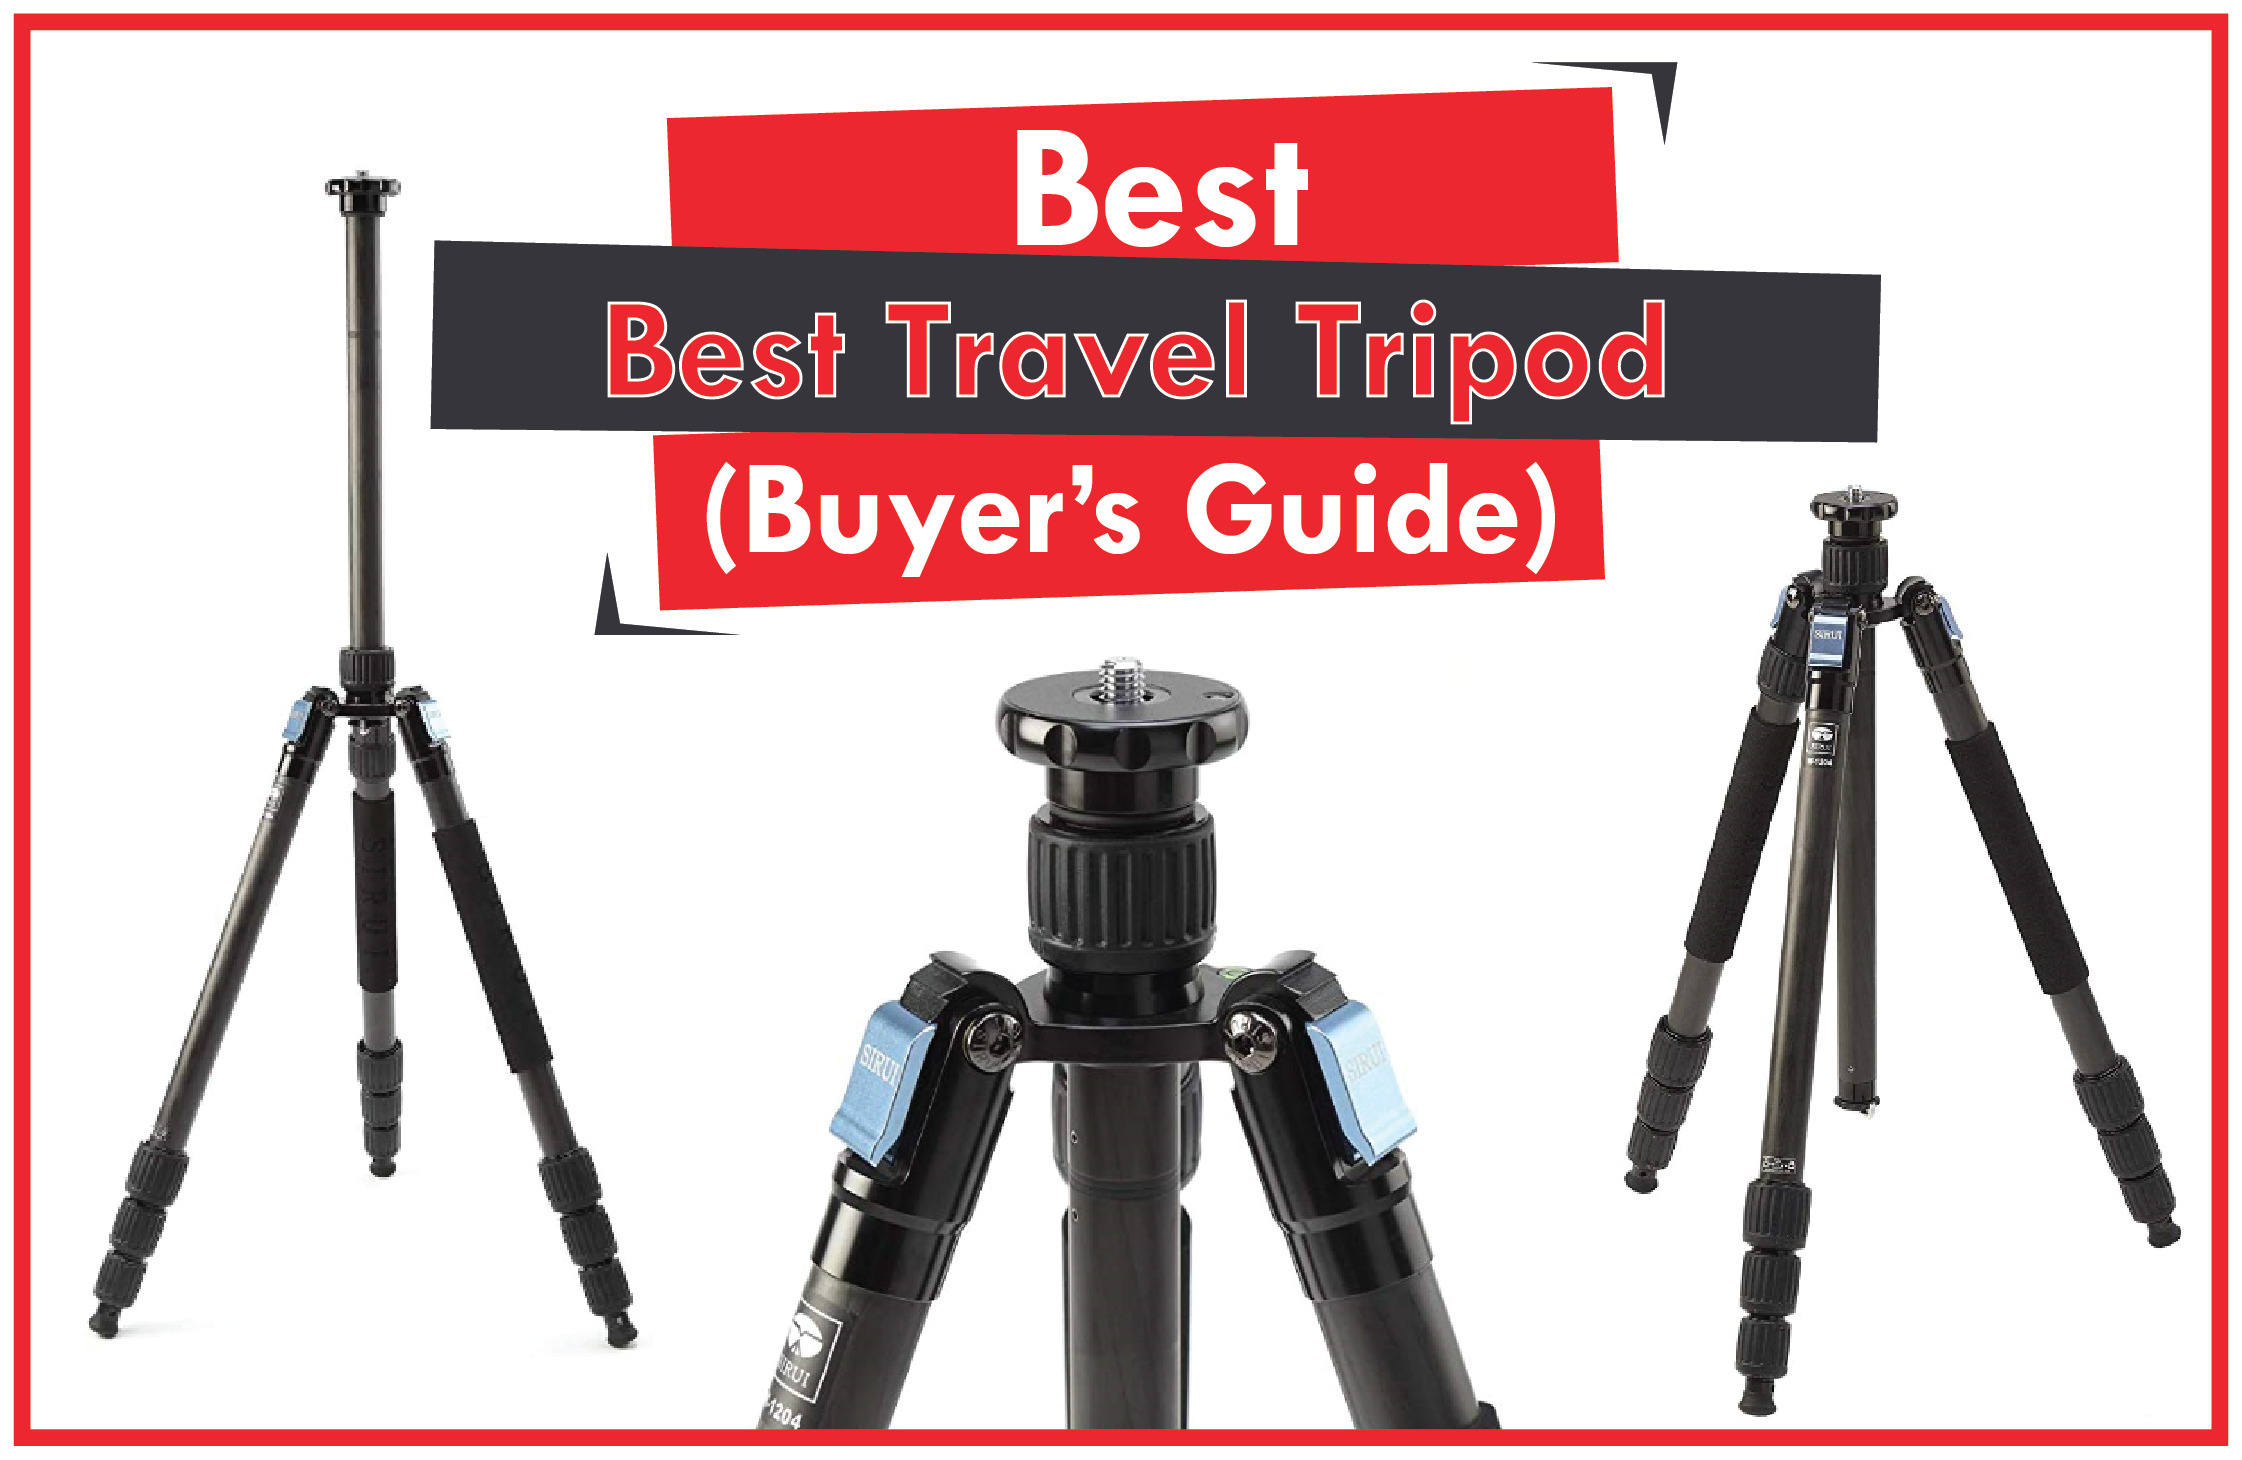 Best Travel Tripod